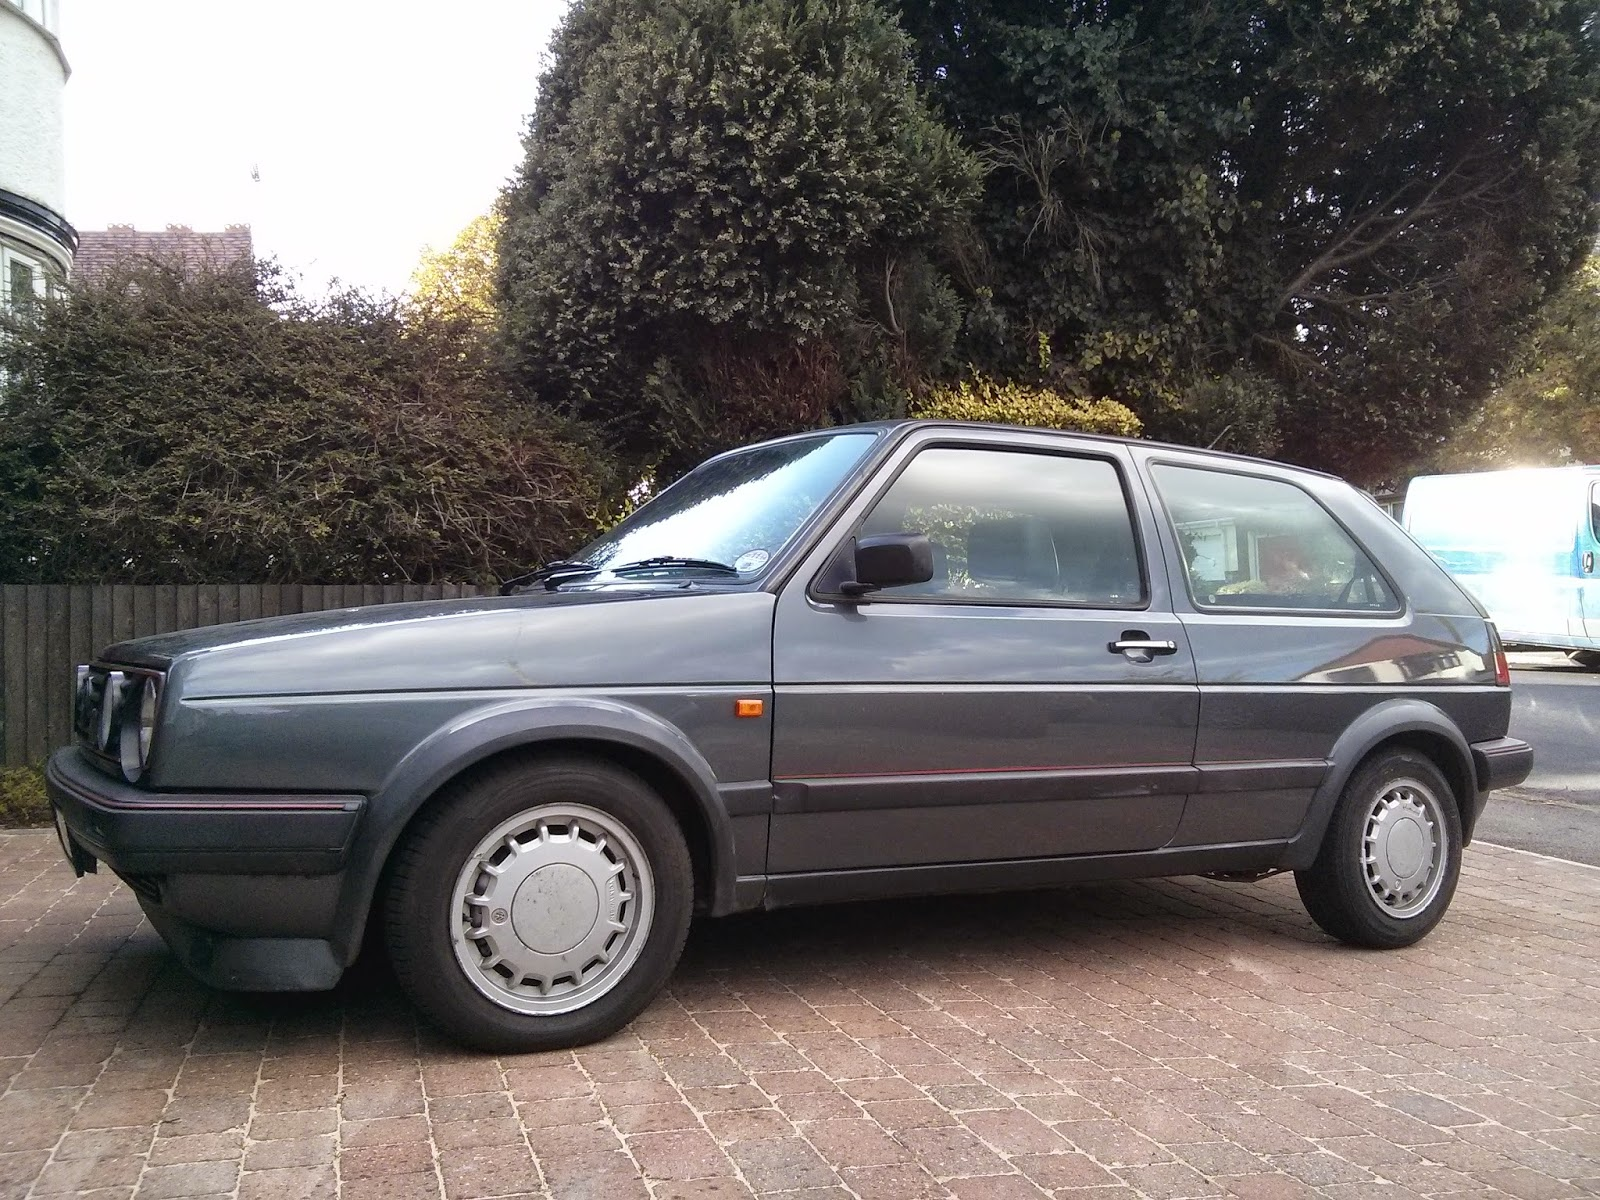 Photo of 1989 VW Golf GTI 16V with OEM standard alloy wheels